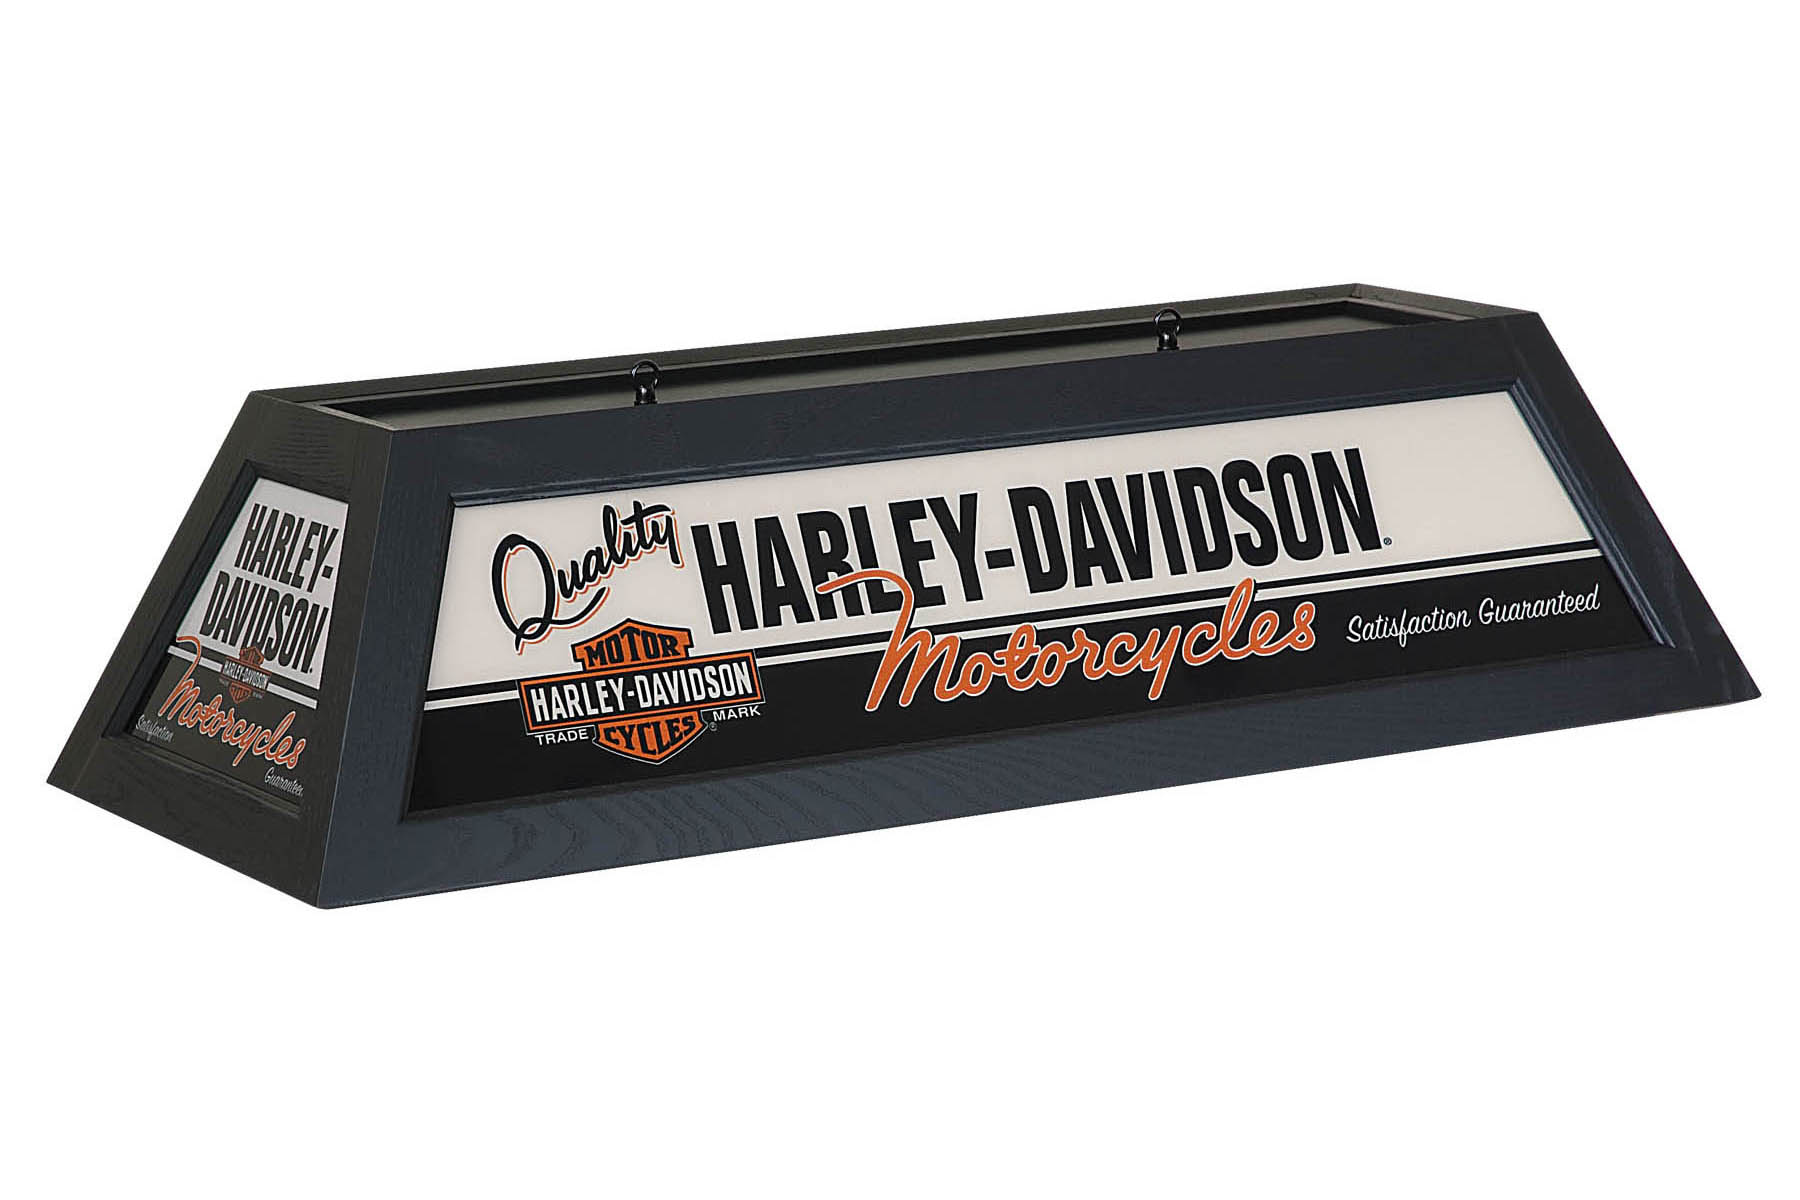 Harley-Davidson Quality Motorcycles Billiard Lamp Black Finish HDL-11782